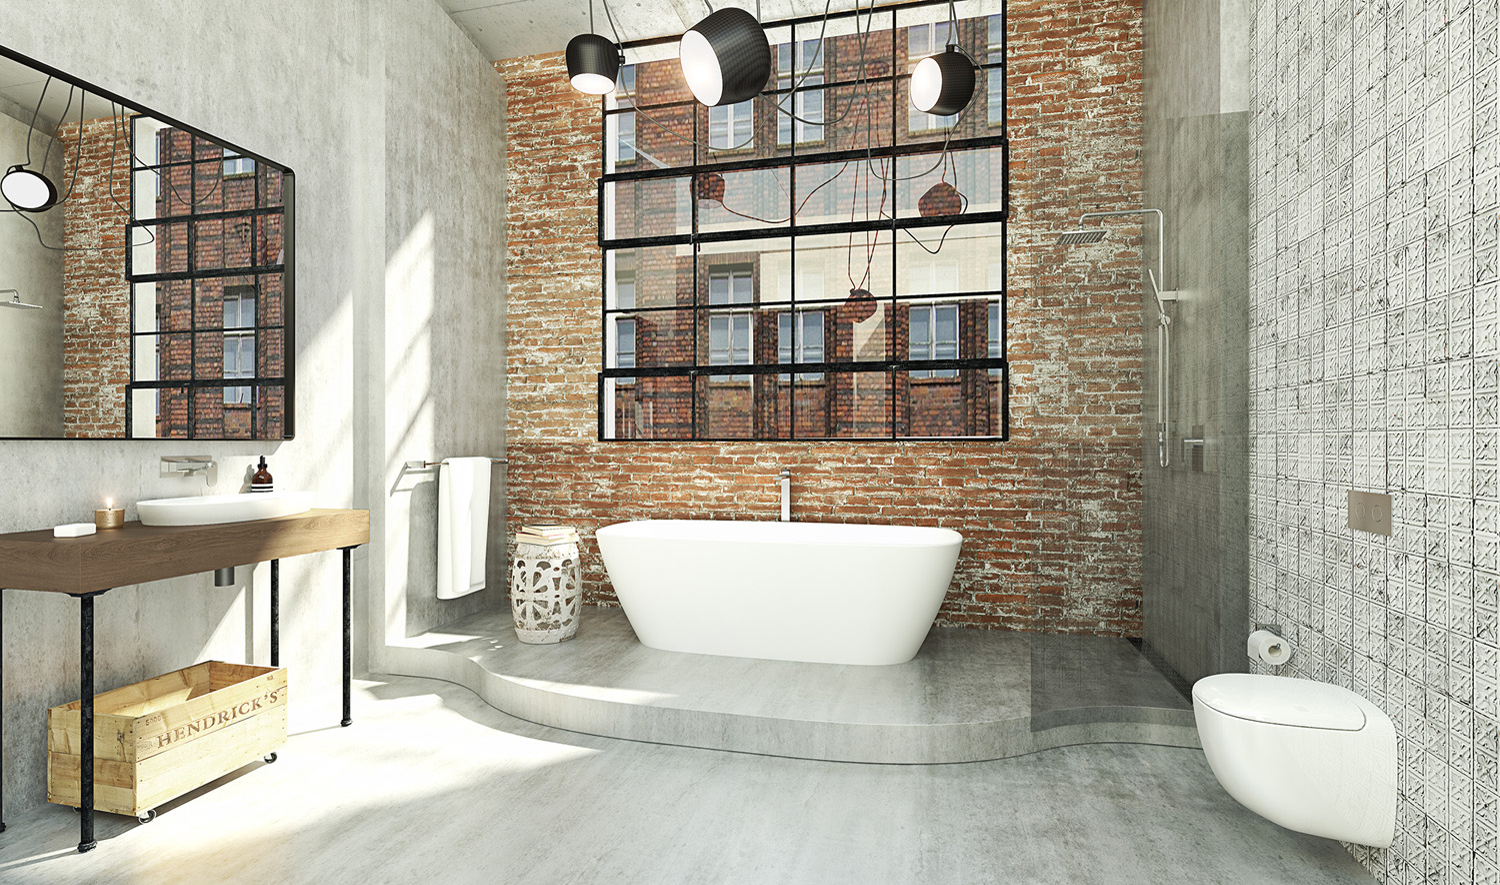 The latest in bathrooms from caroma completehome for Bathroom ideas industrial